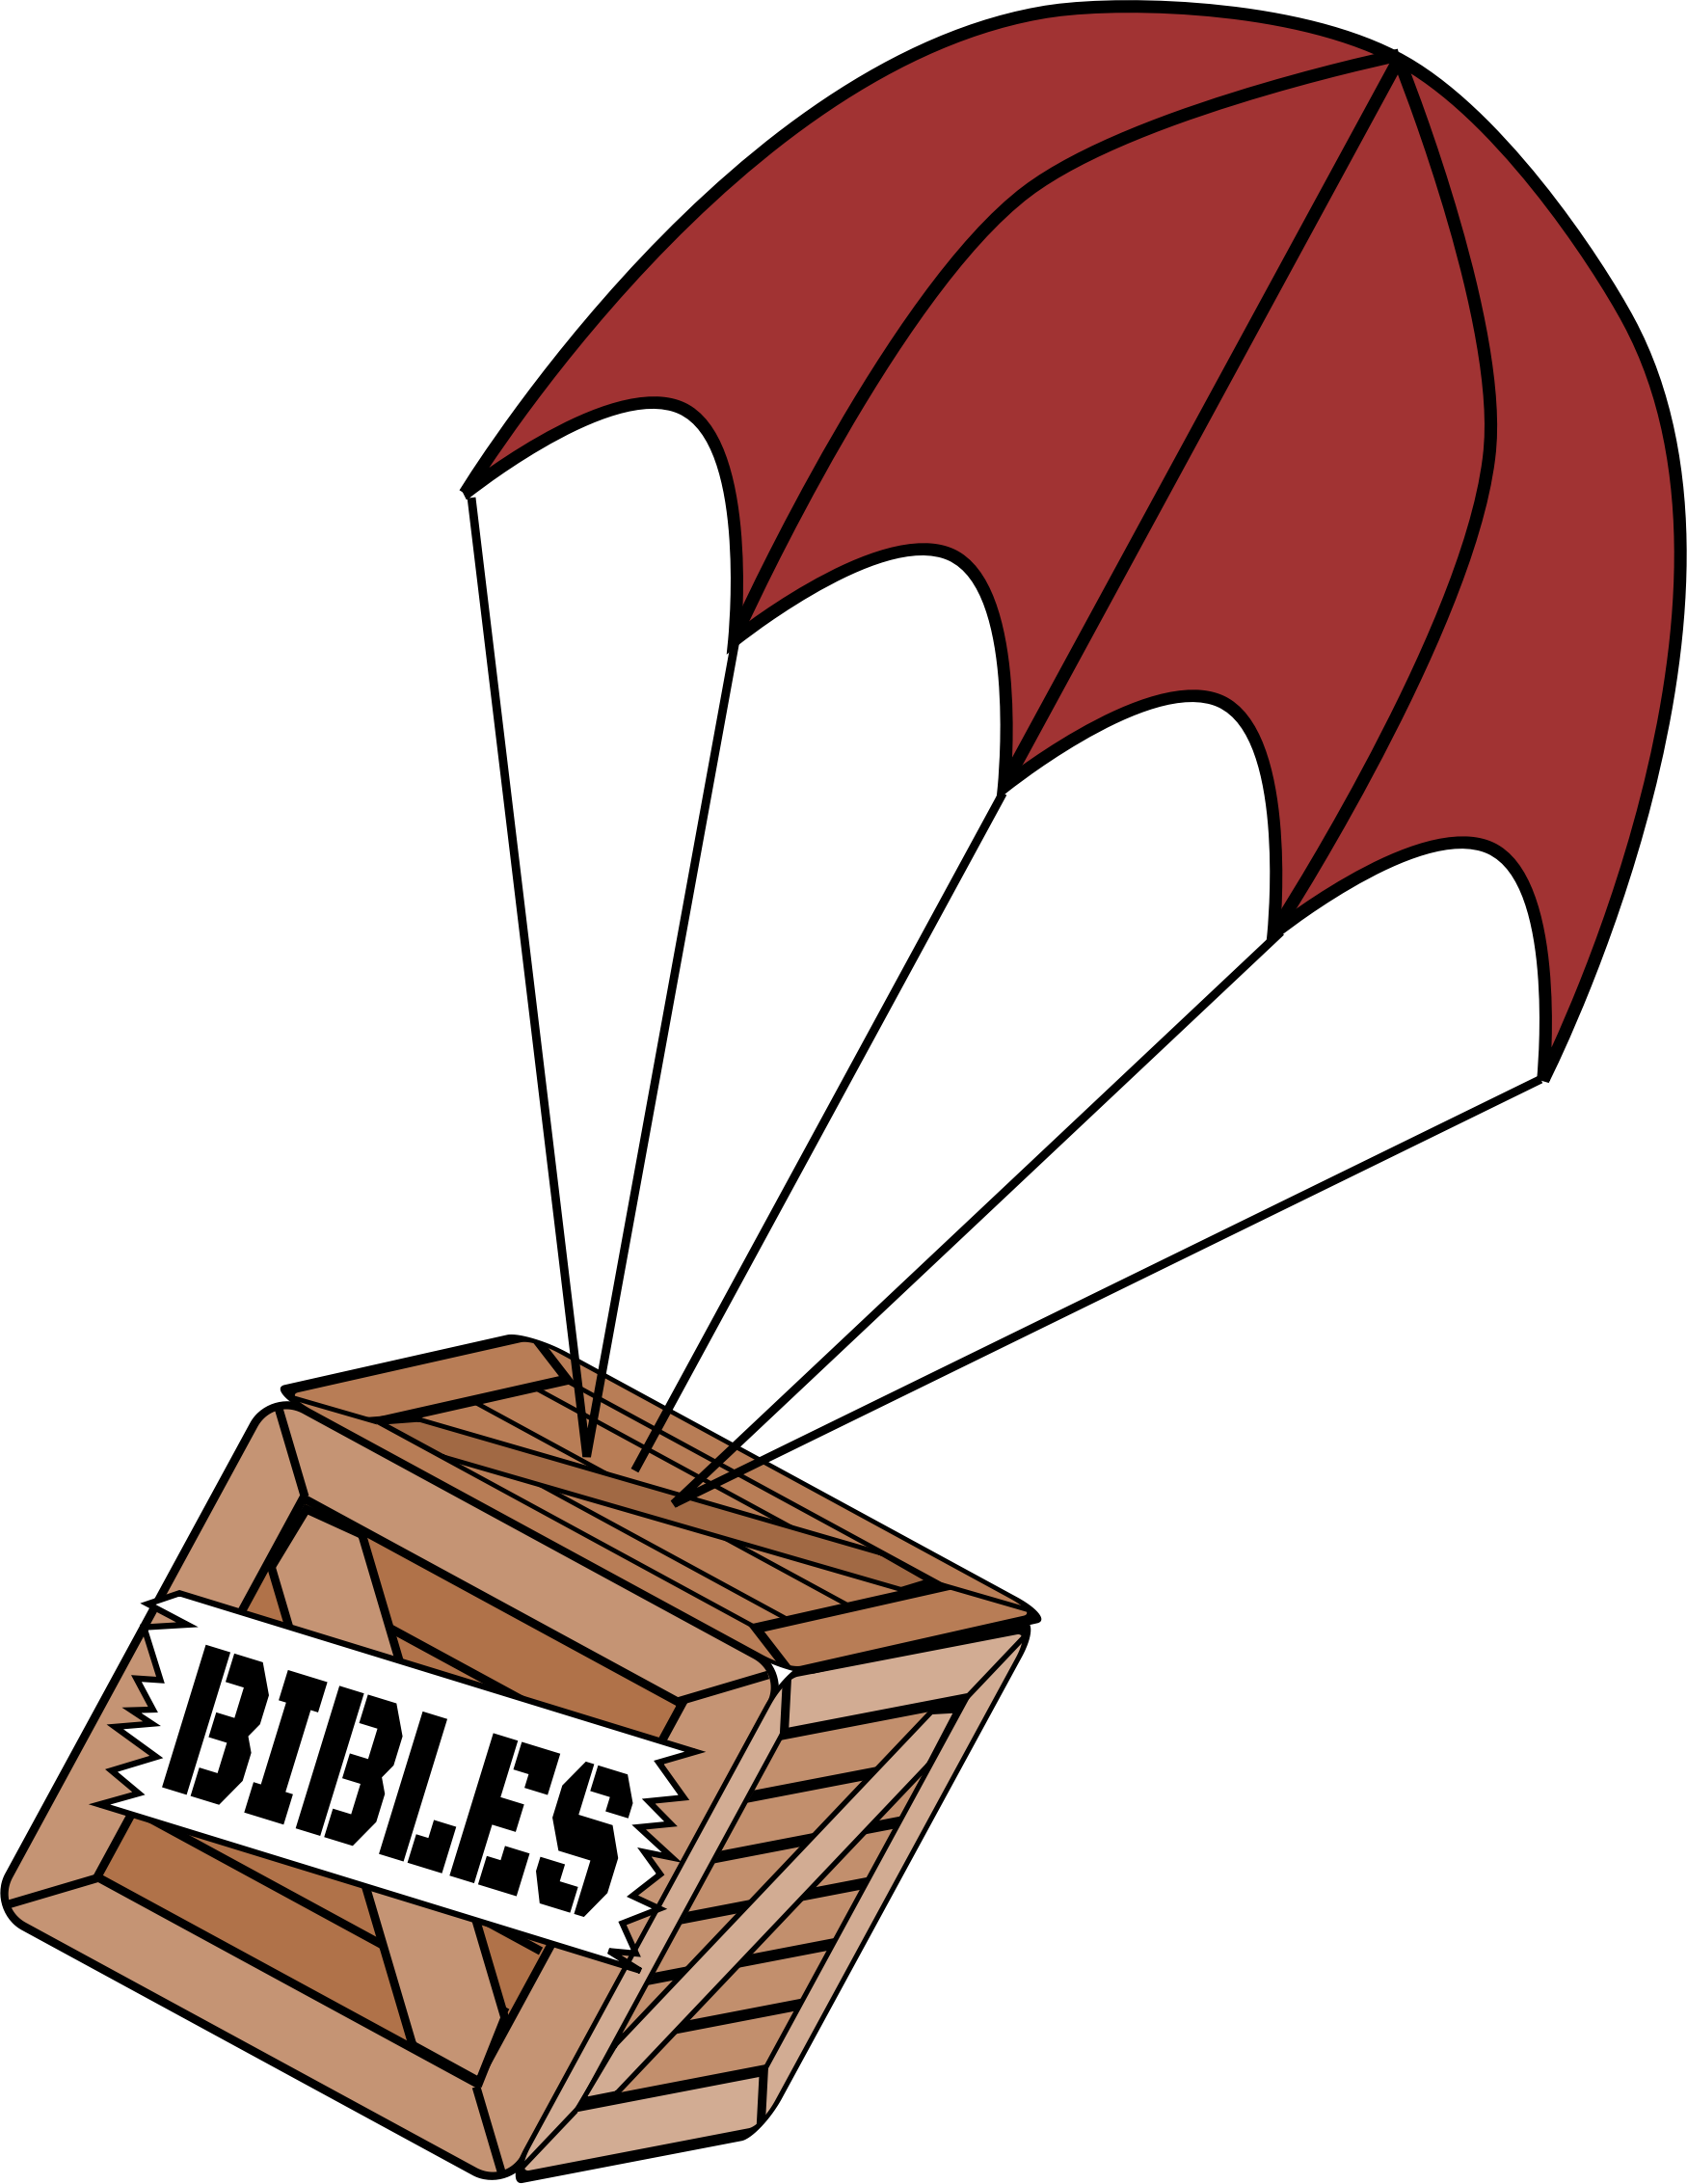 Clipart box crate. Parachute on of bibles